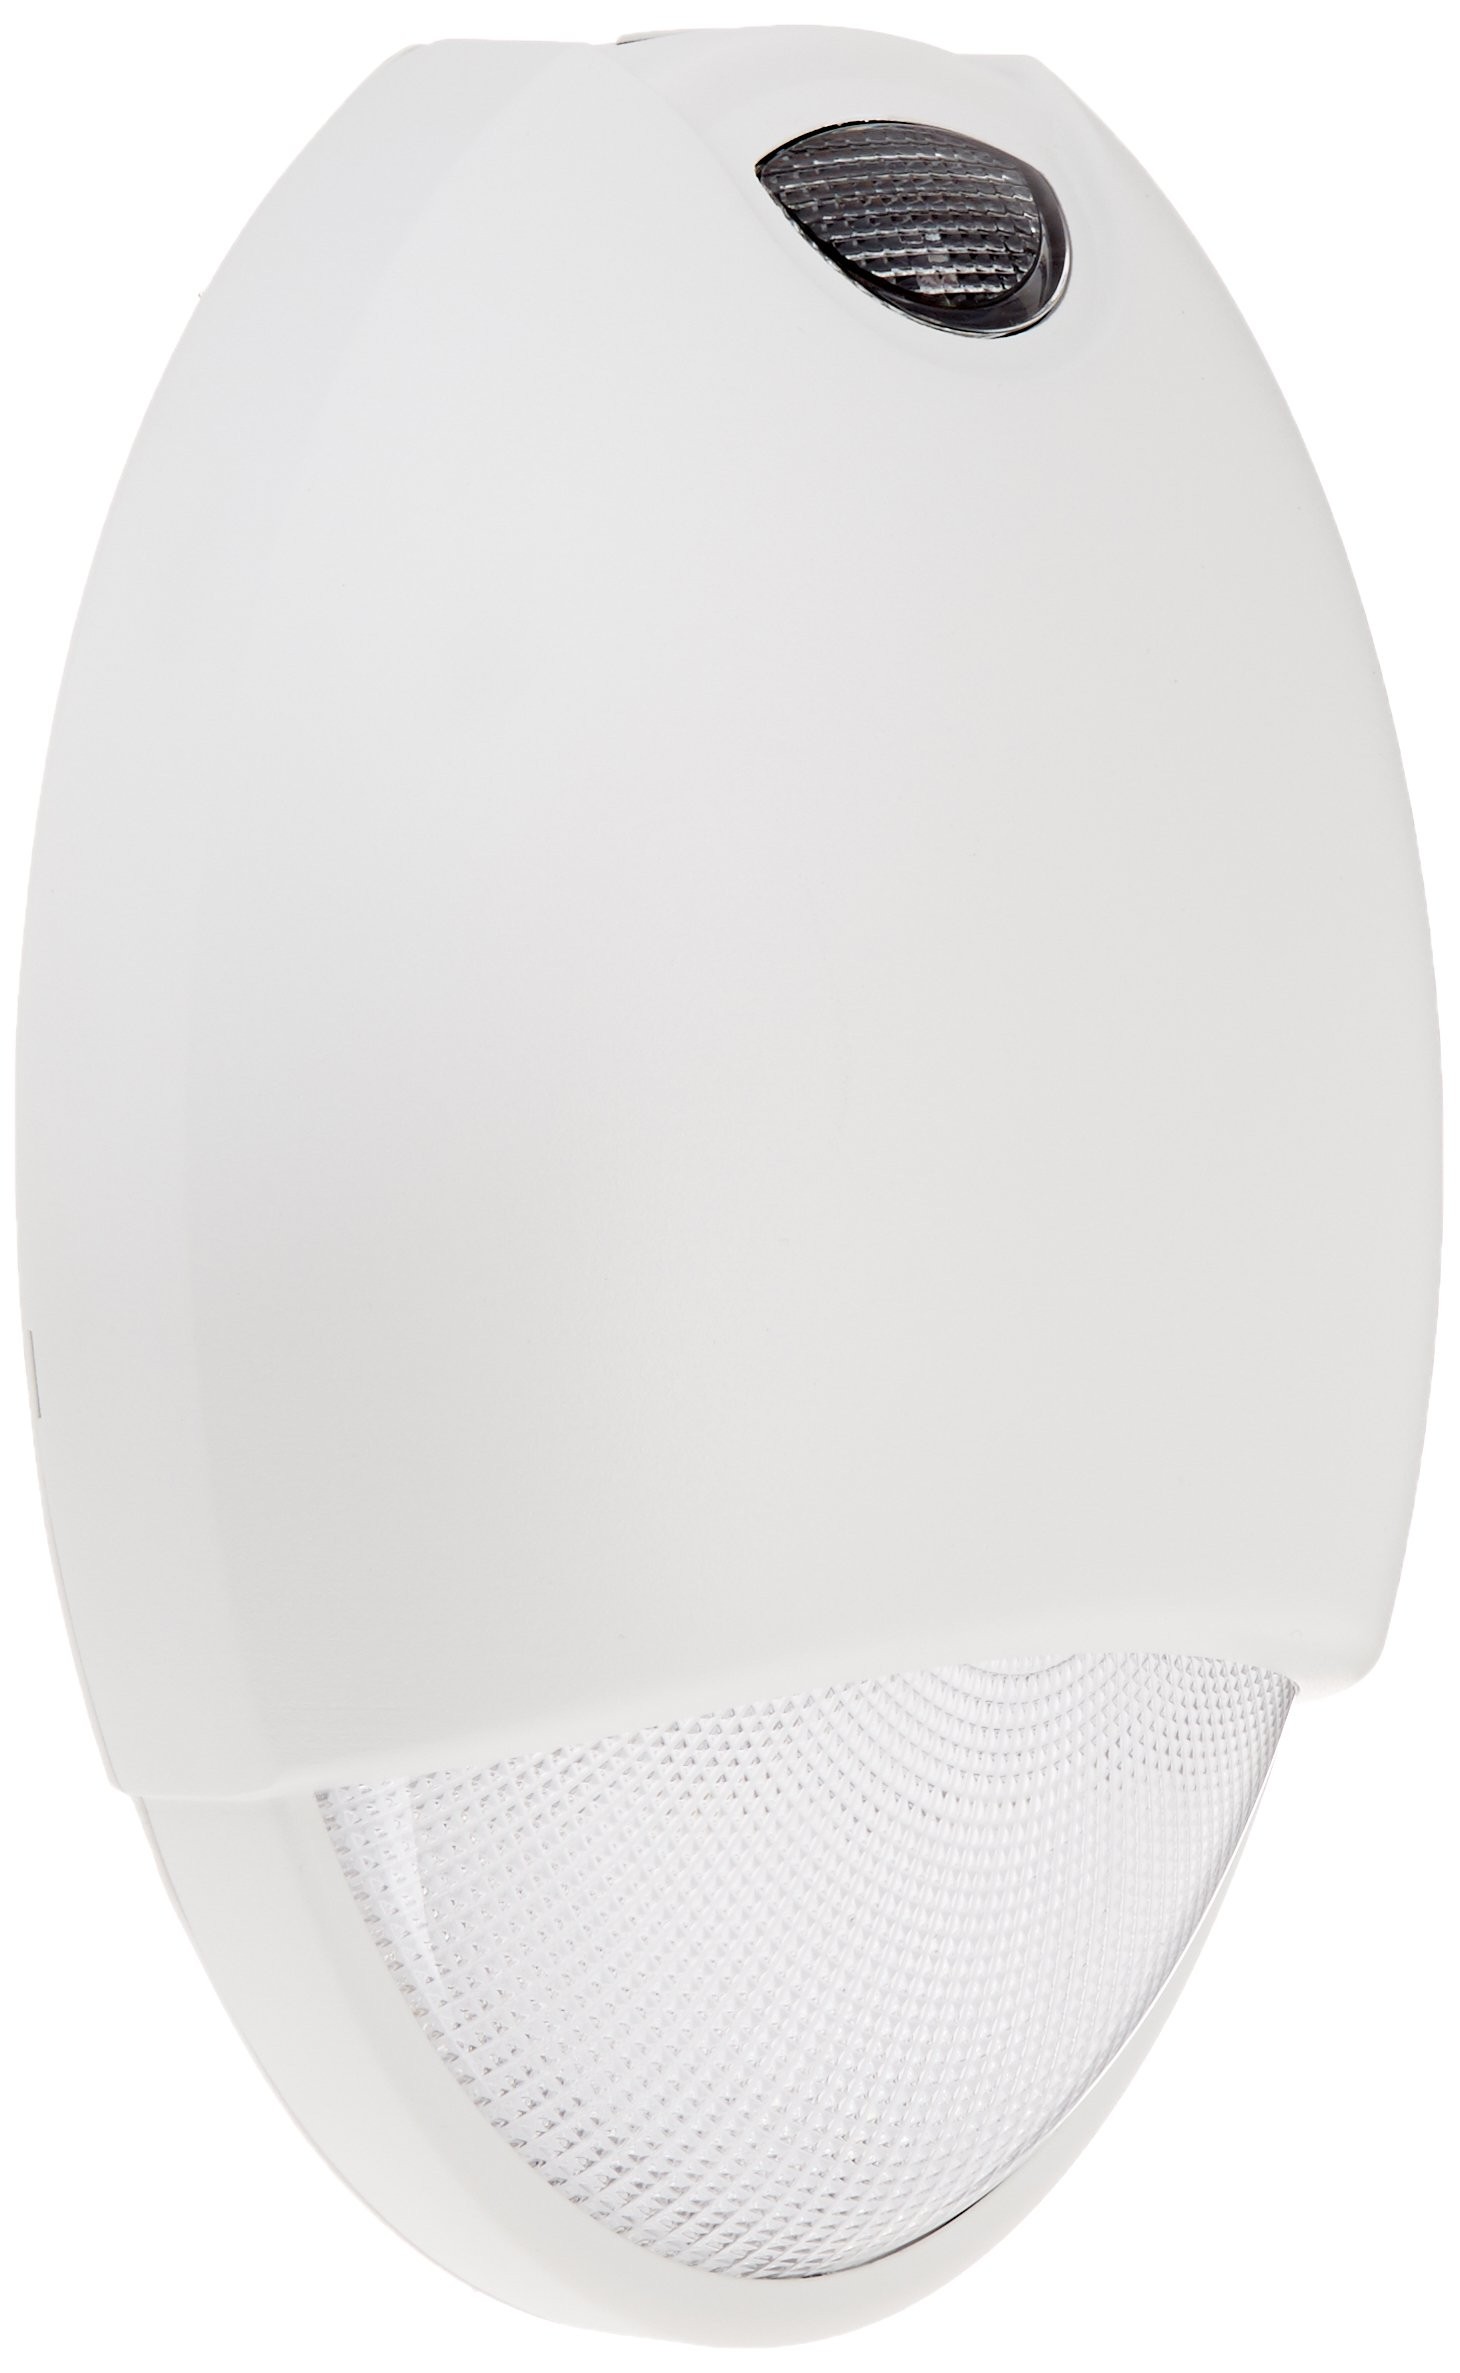 Royal Pacific REL7WH Outdoor Emergency Light with Sensor, White